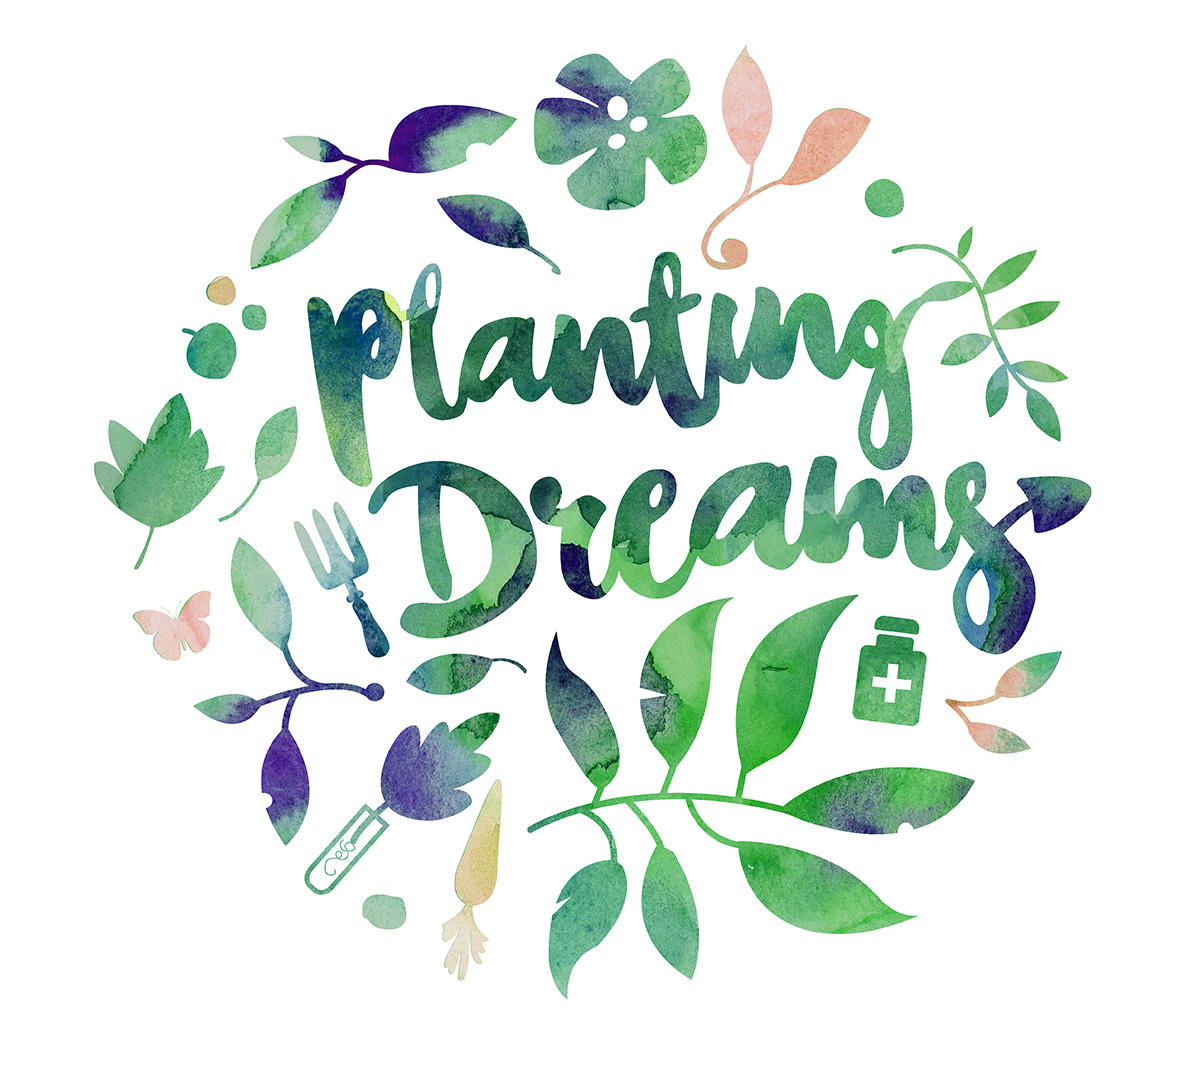 Hand written text states: Planting Dreams, set within a circle of watercolour shapes of leaves.